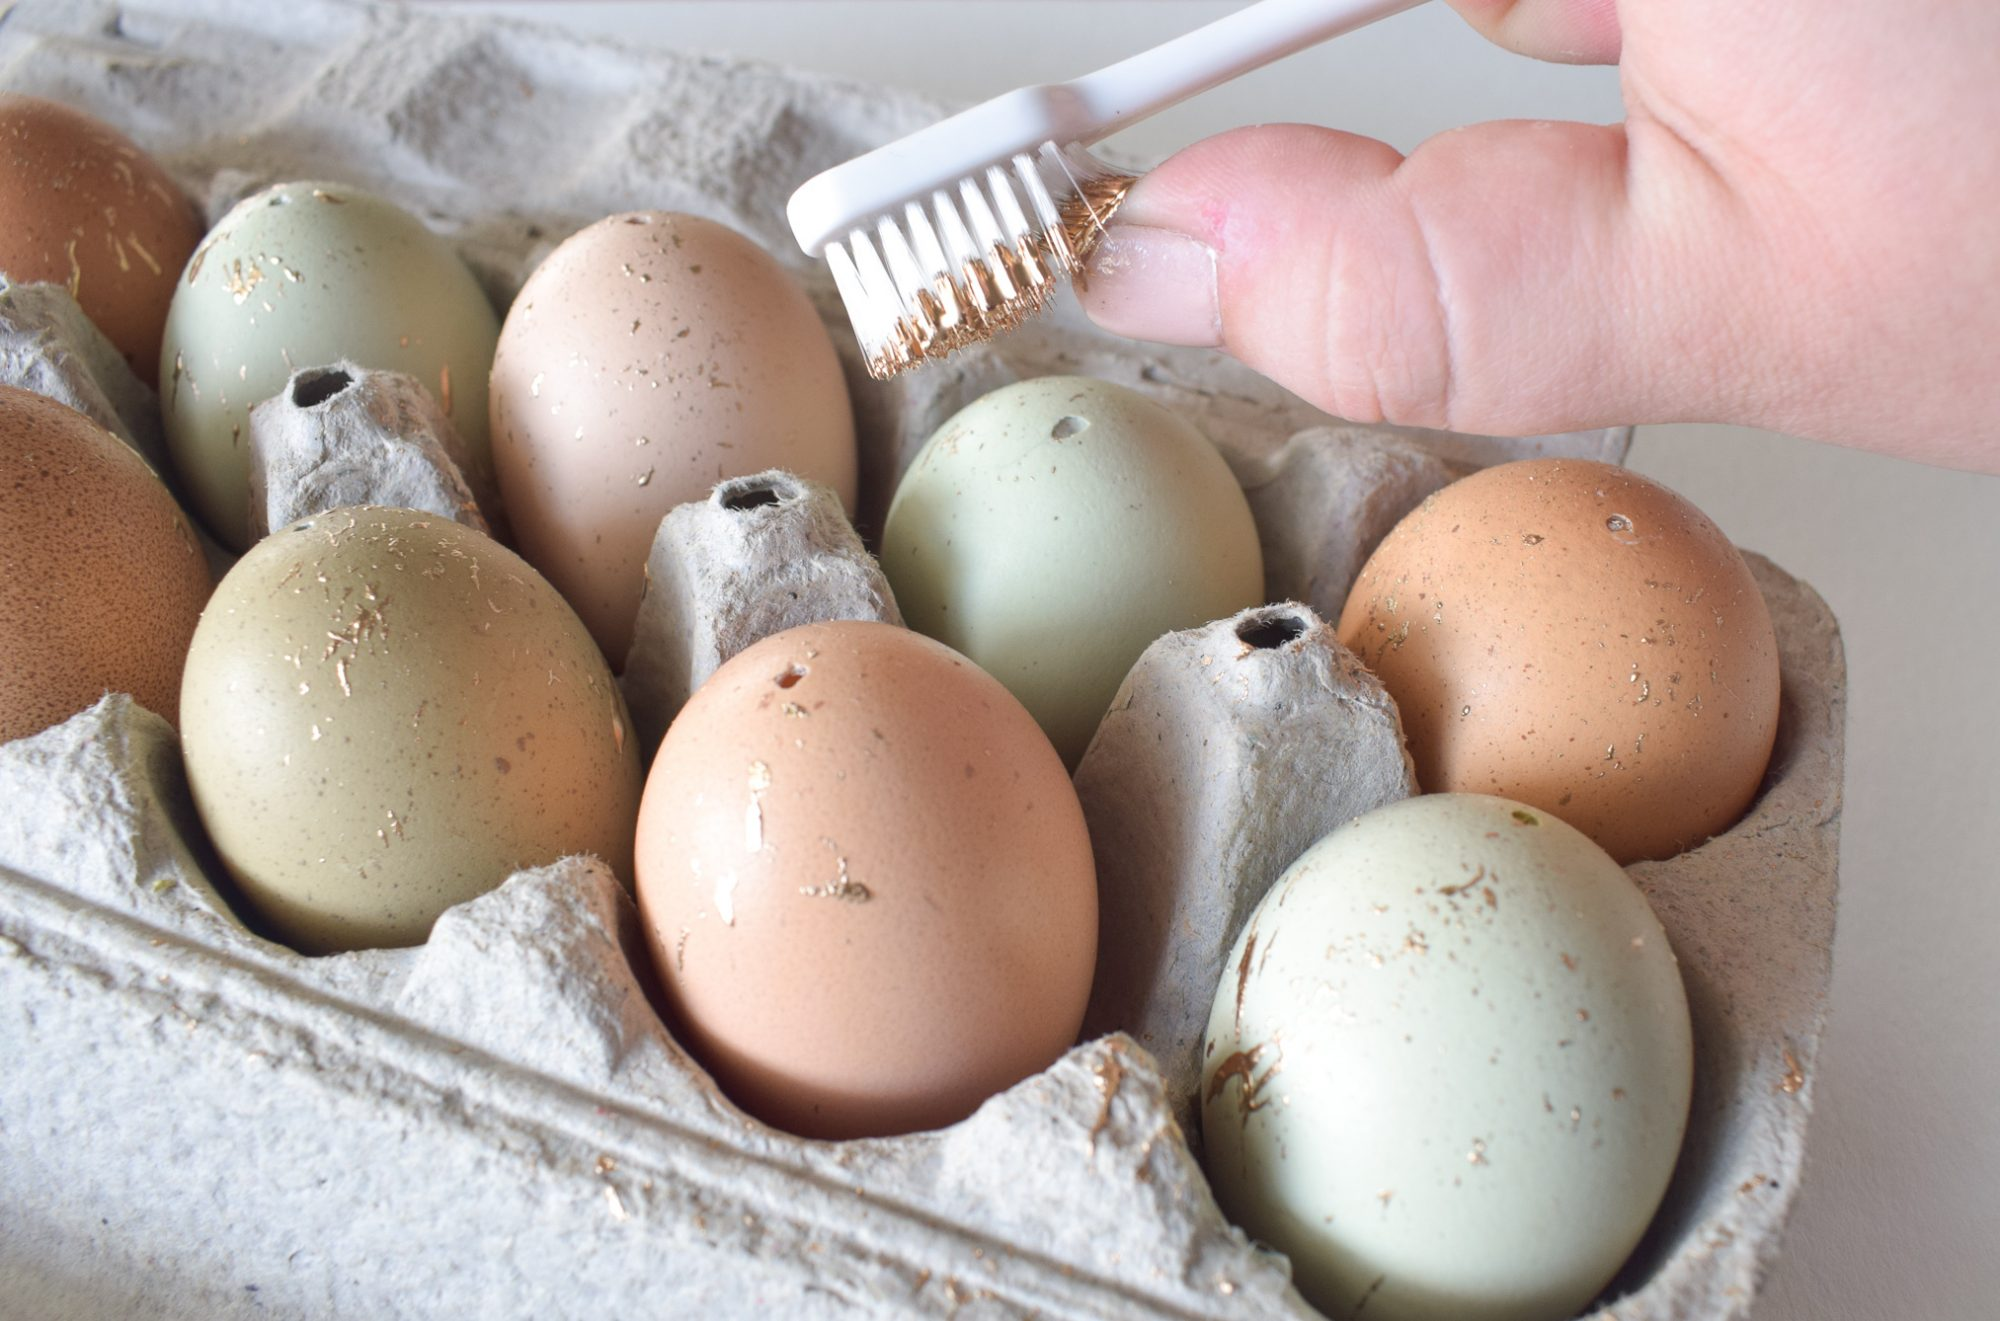 Decorating Eggs with Gold Paint and Toothbrush